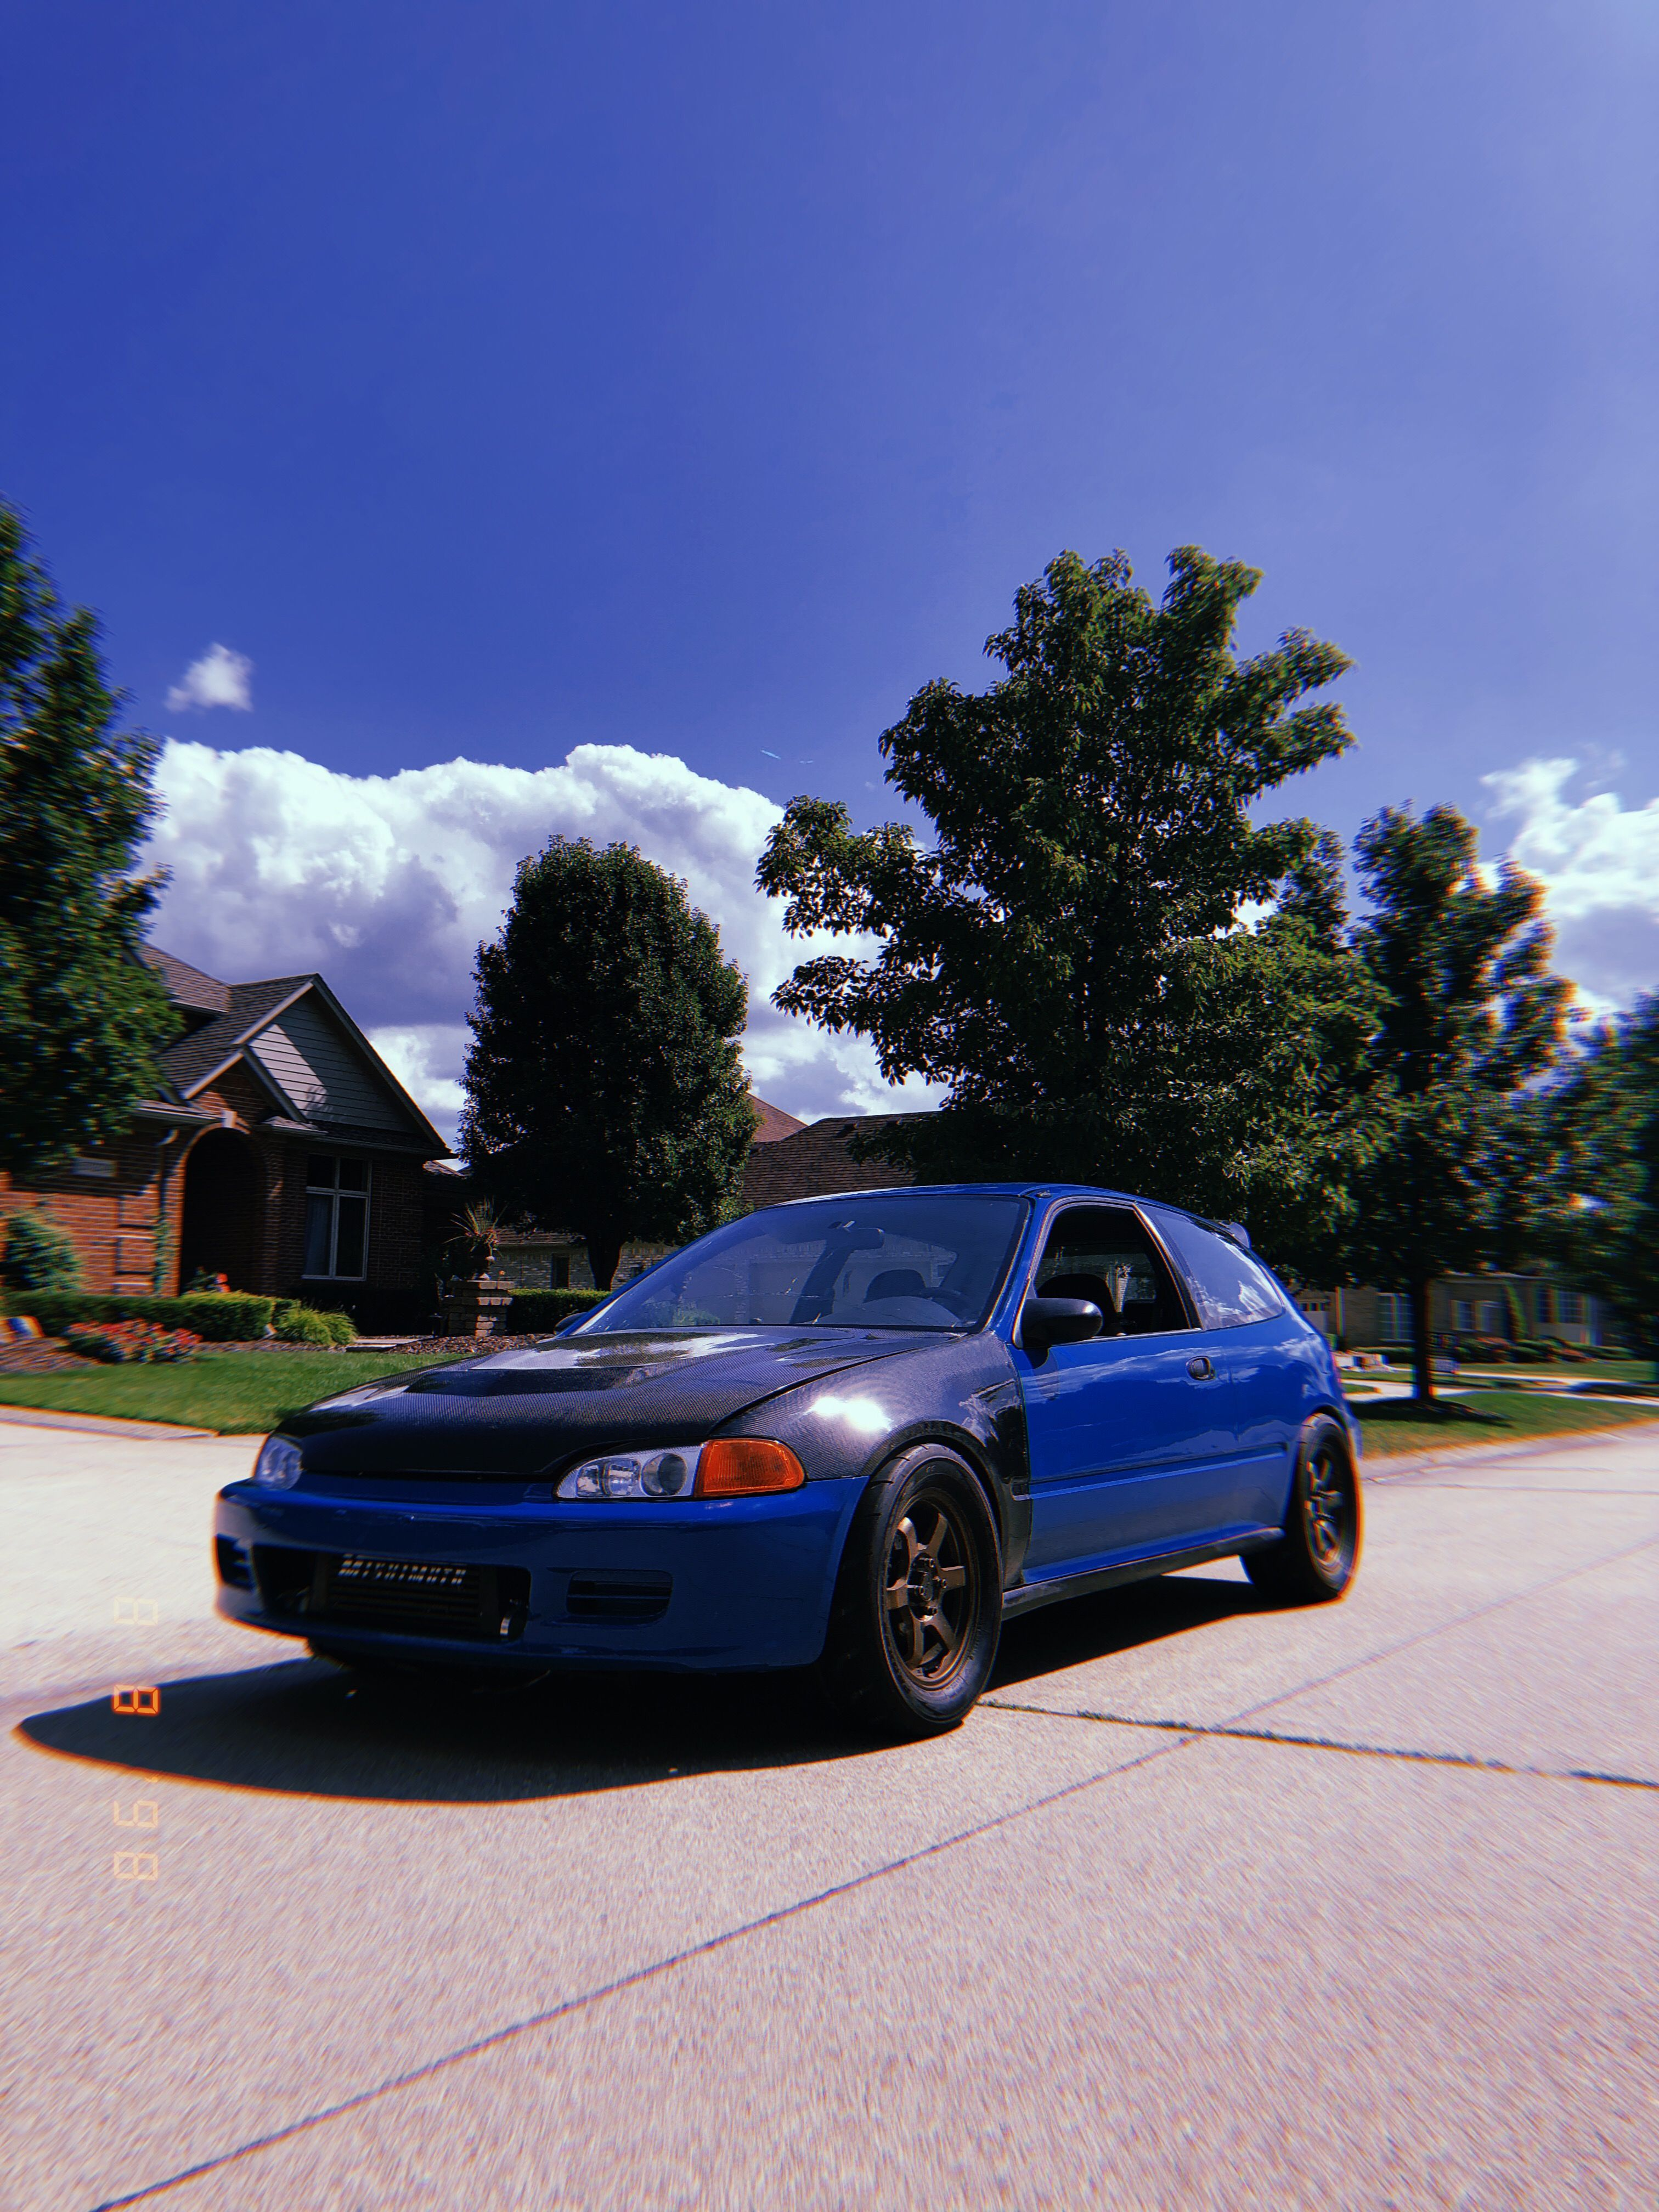 Big turbo eg6 with full carbon hood and fenders turbo